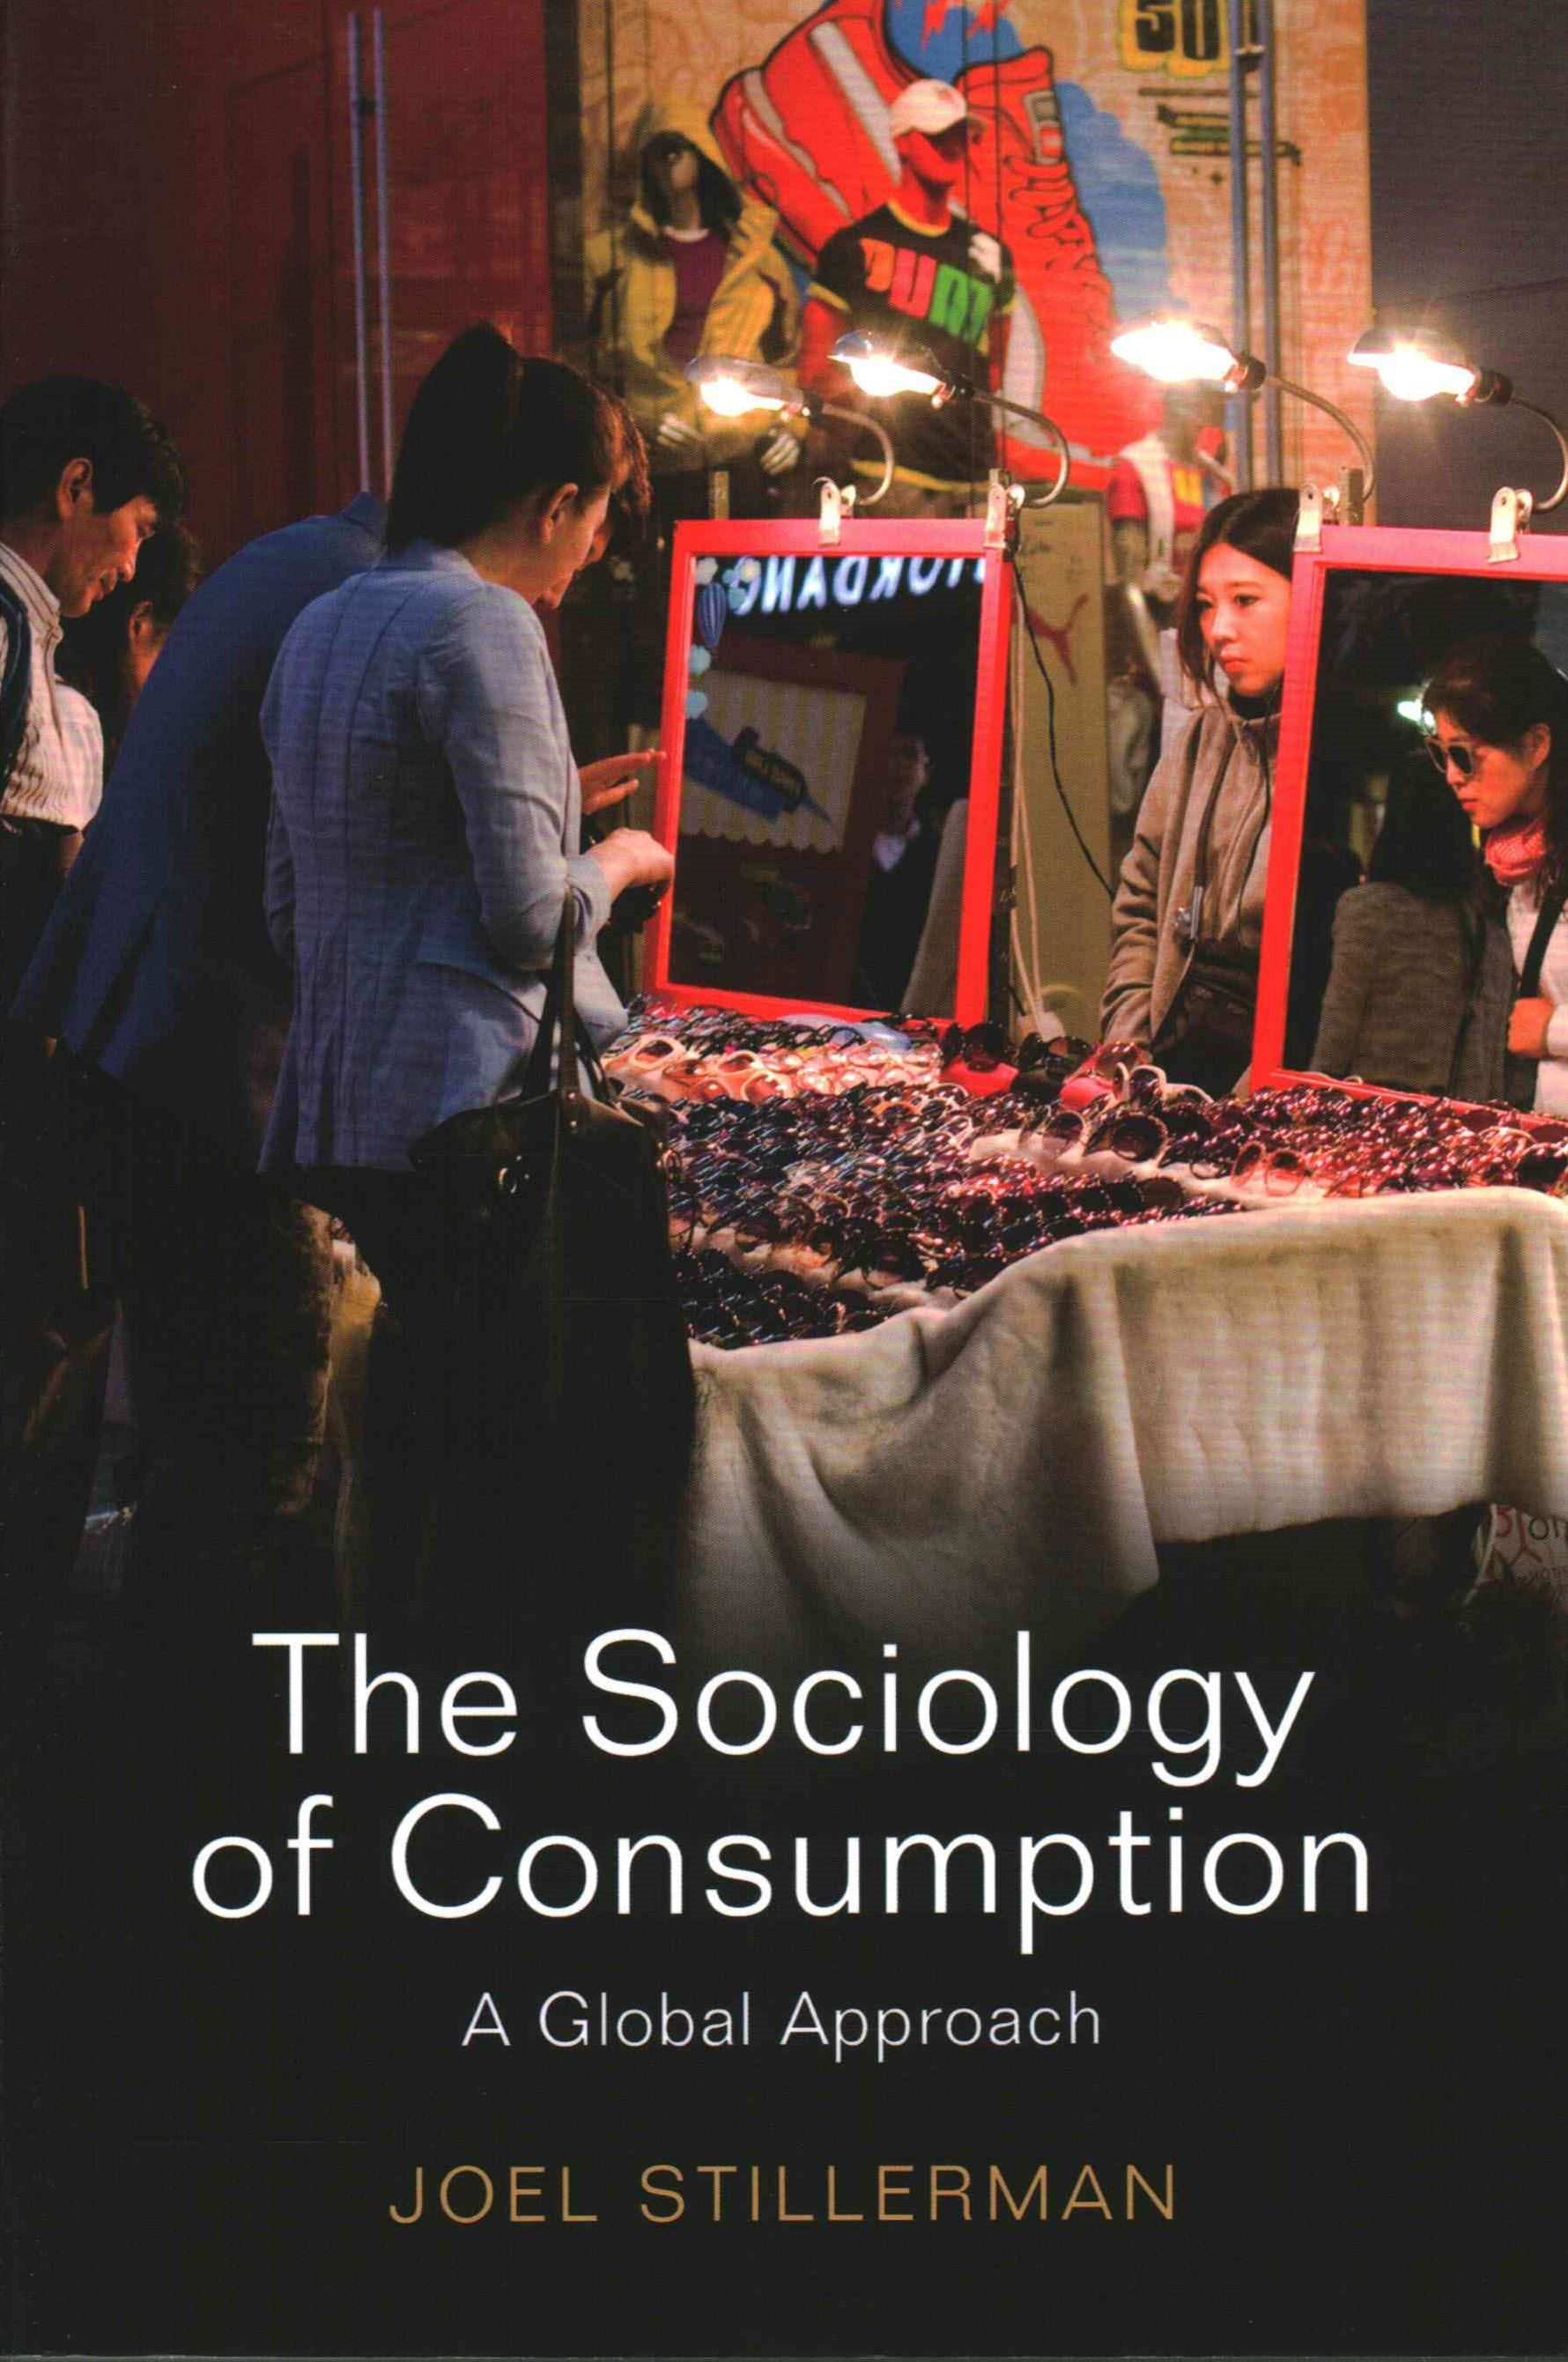 The Sociology of Consumption - a Global Approach